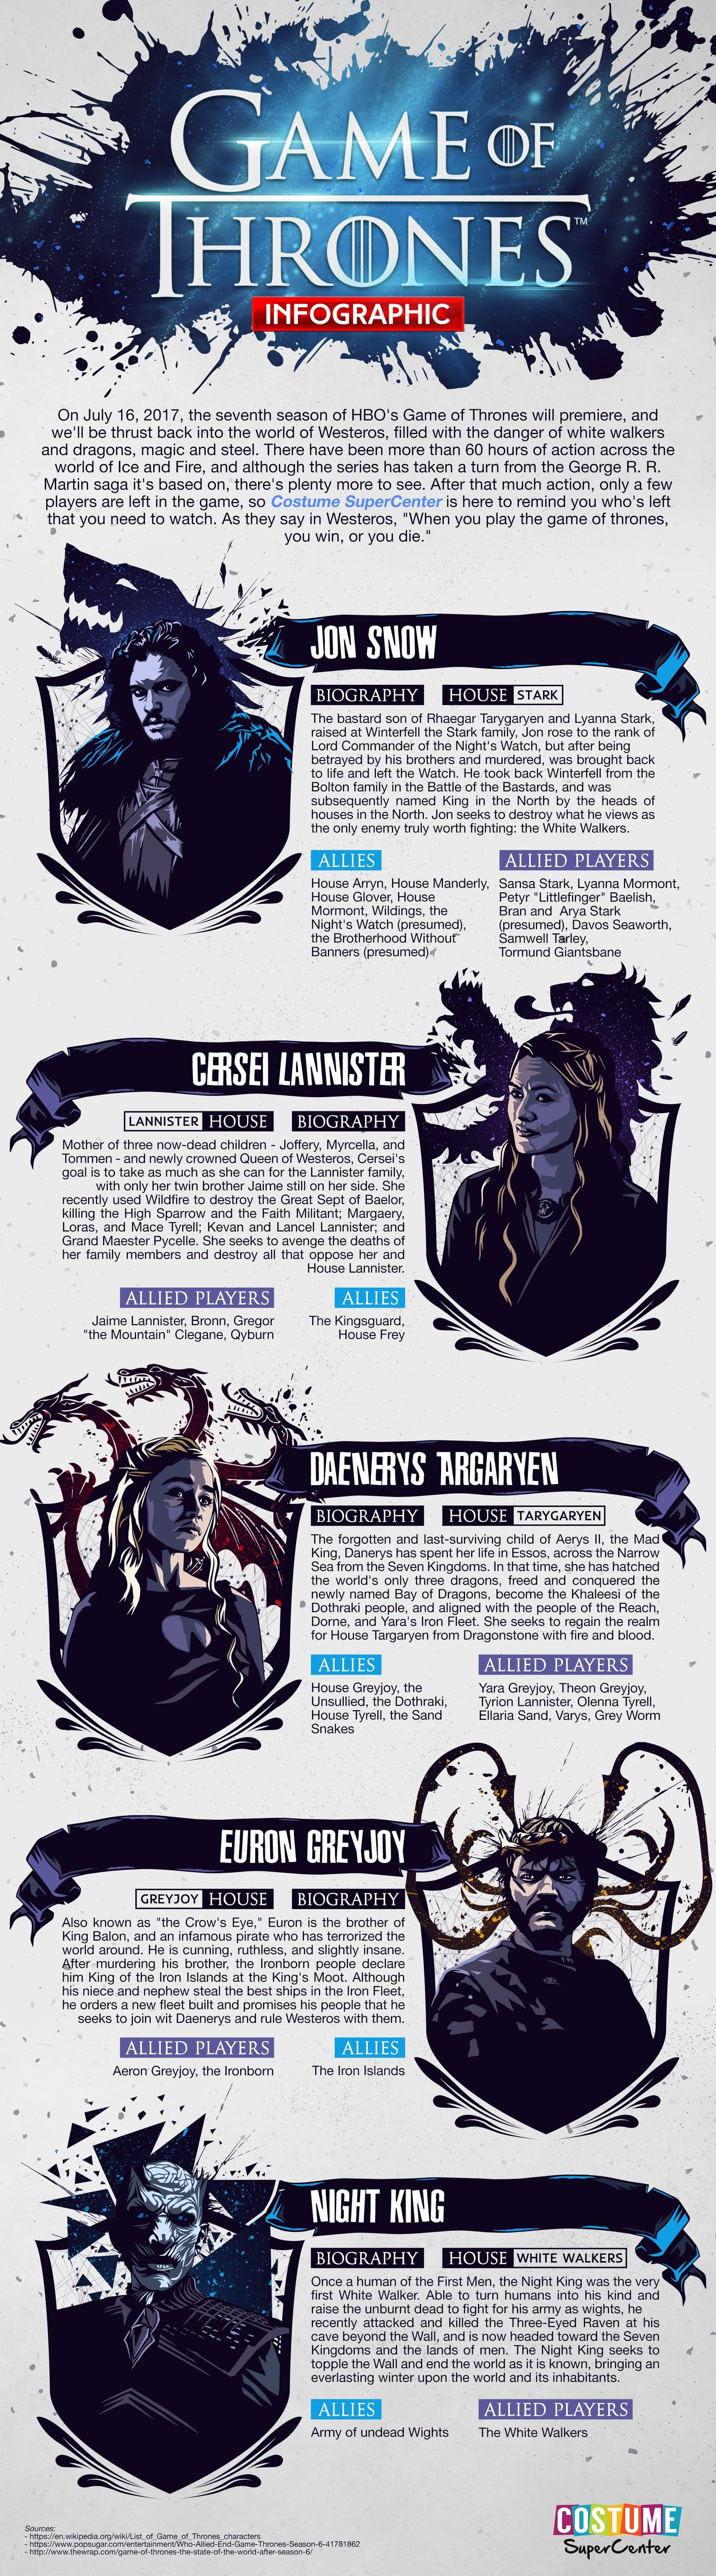 Game of Thrones Season 7 #Infographic